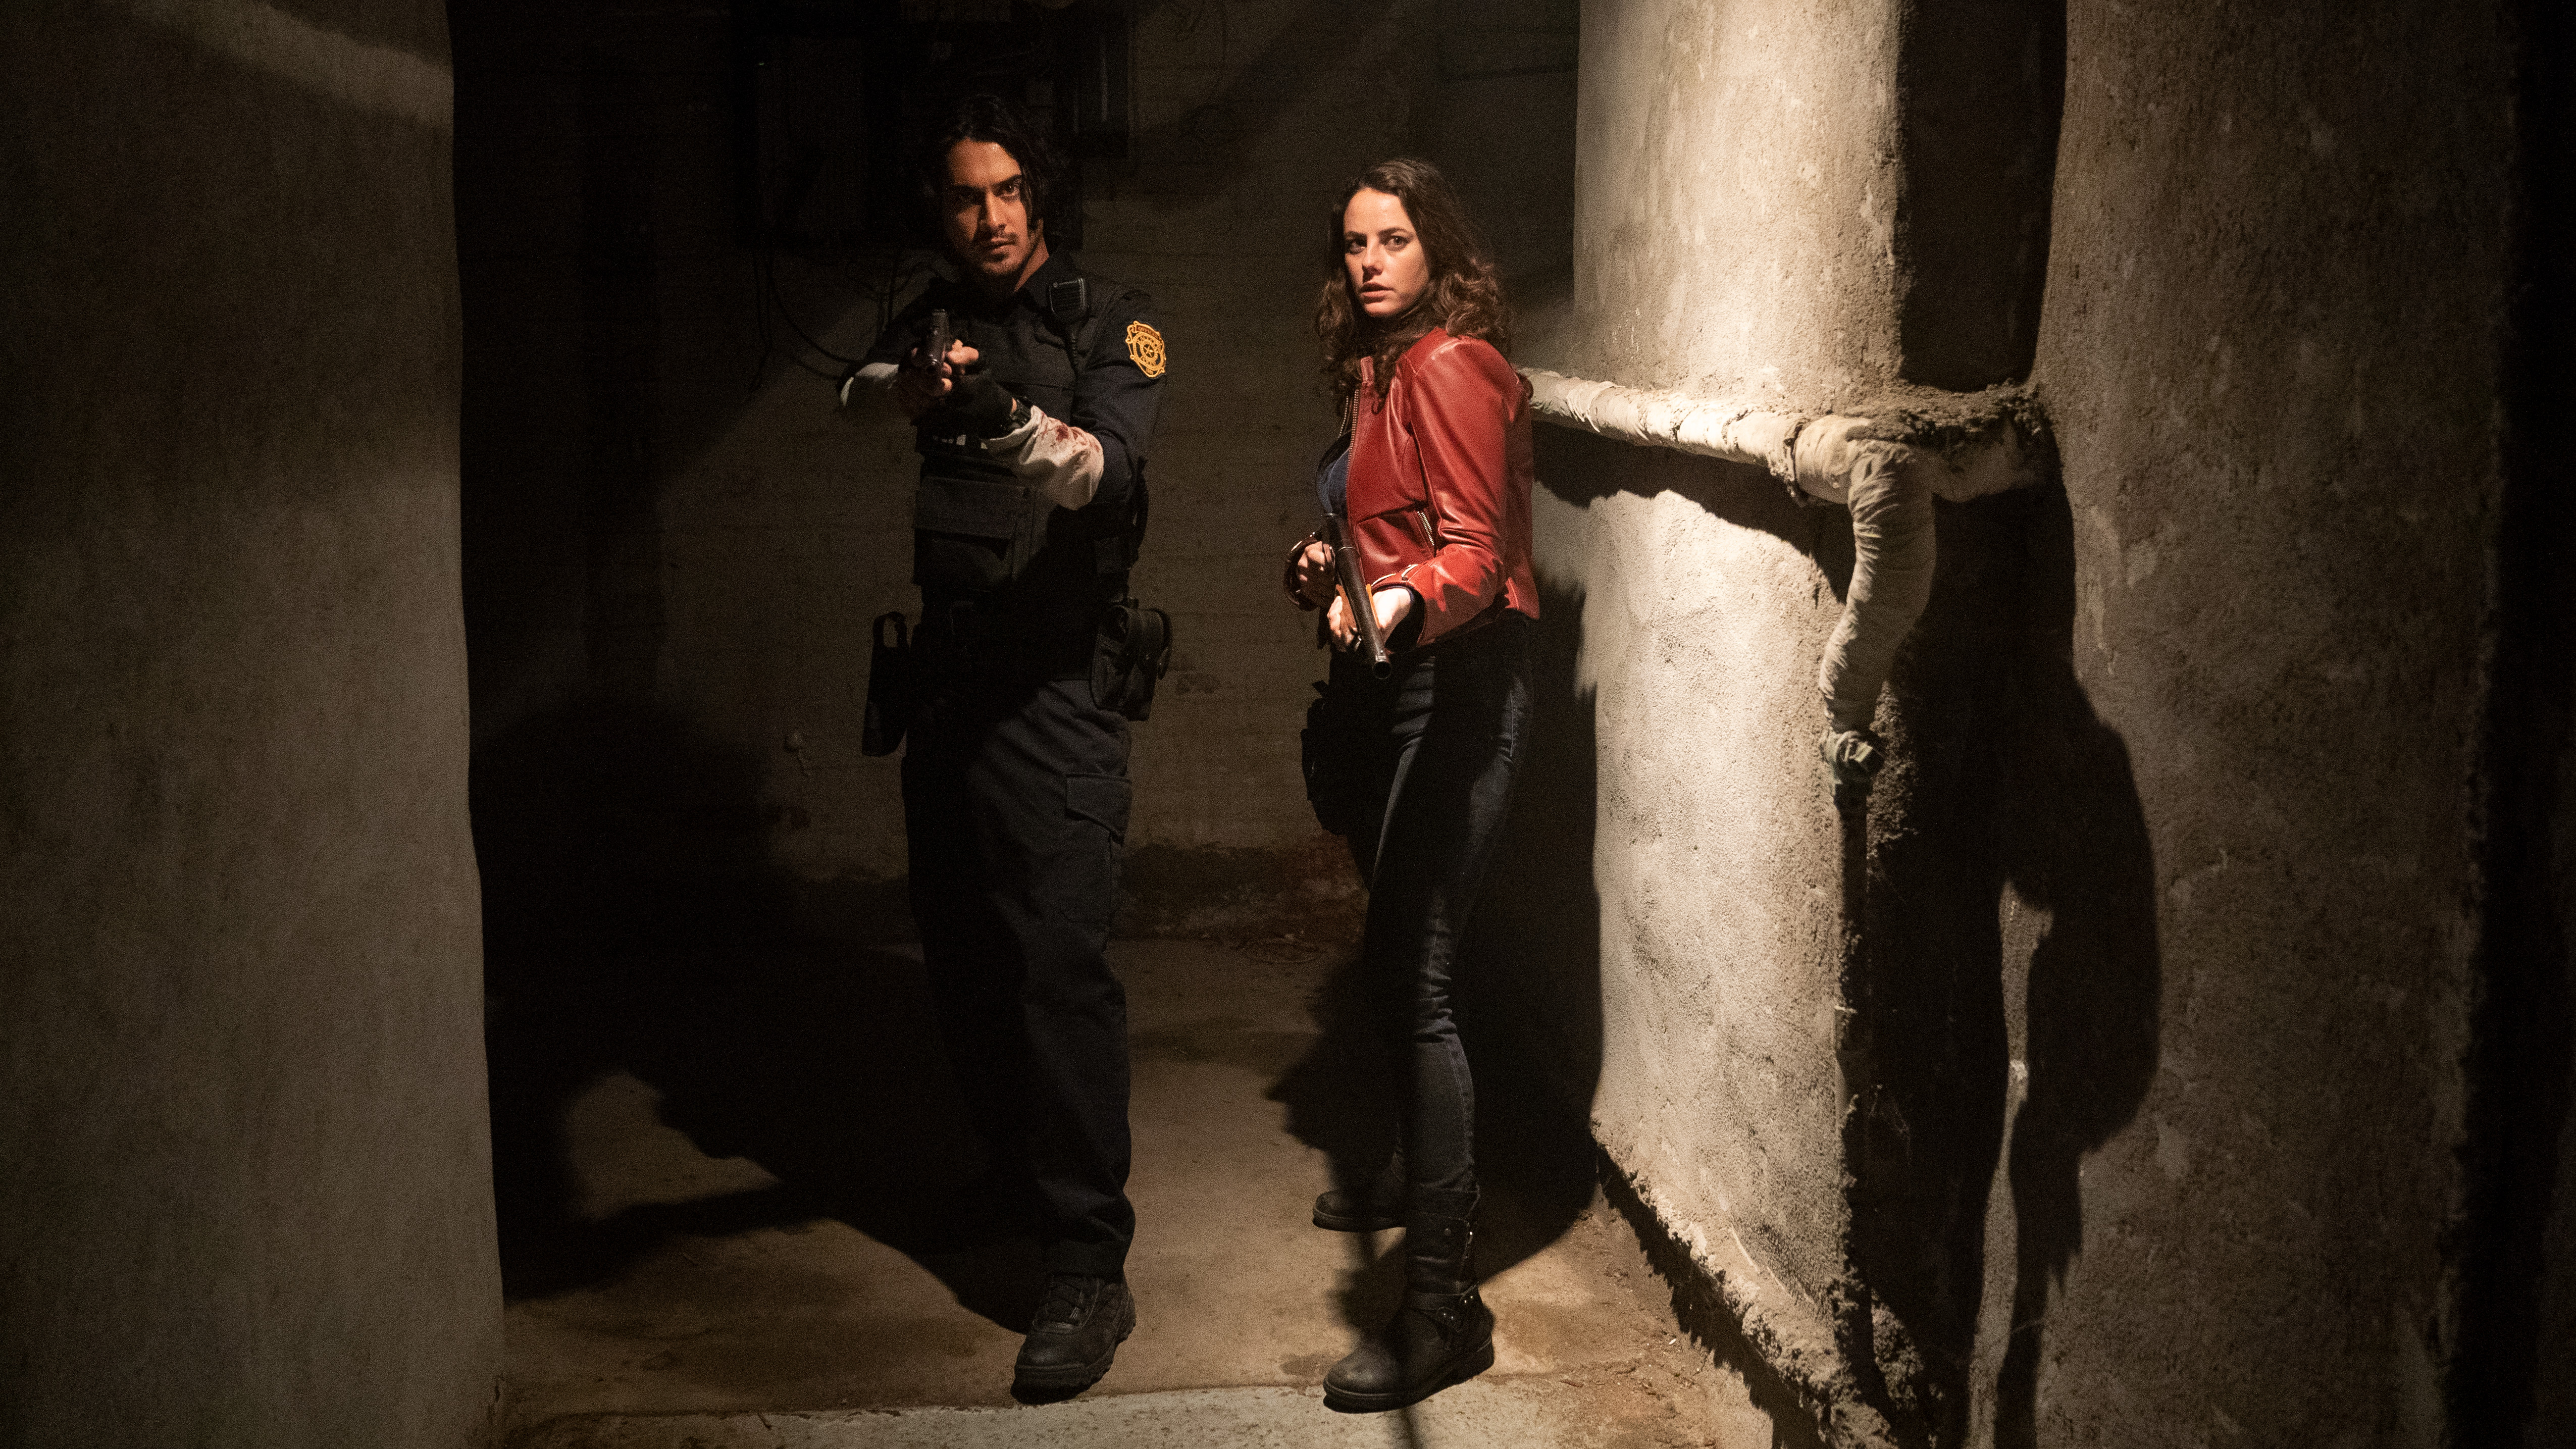 Claire Redfield and Leon S. Kennedy from the Resident Evil: Welcome to Raccoon City movie